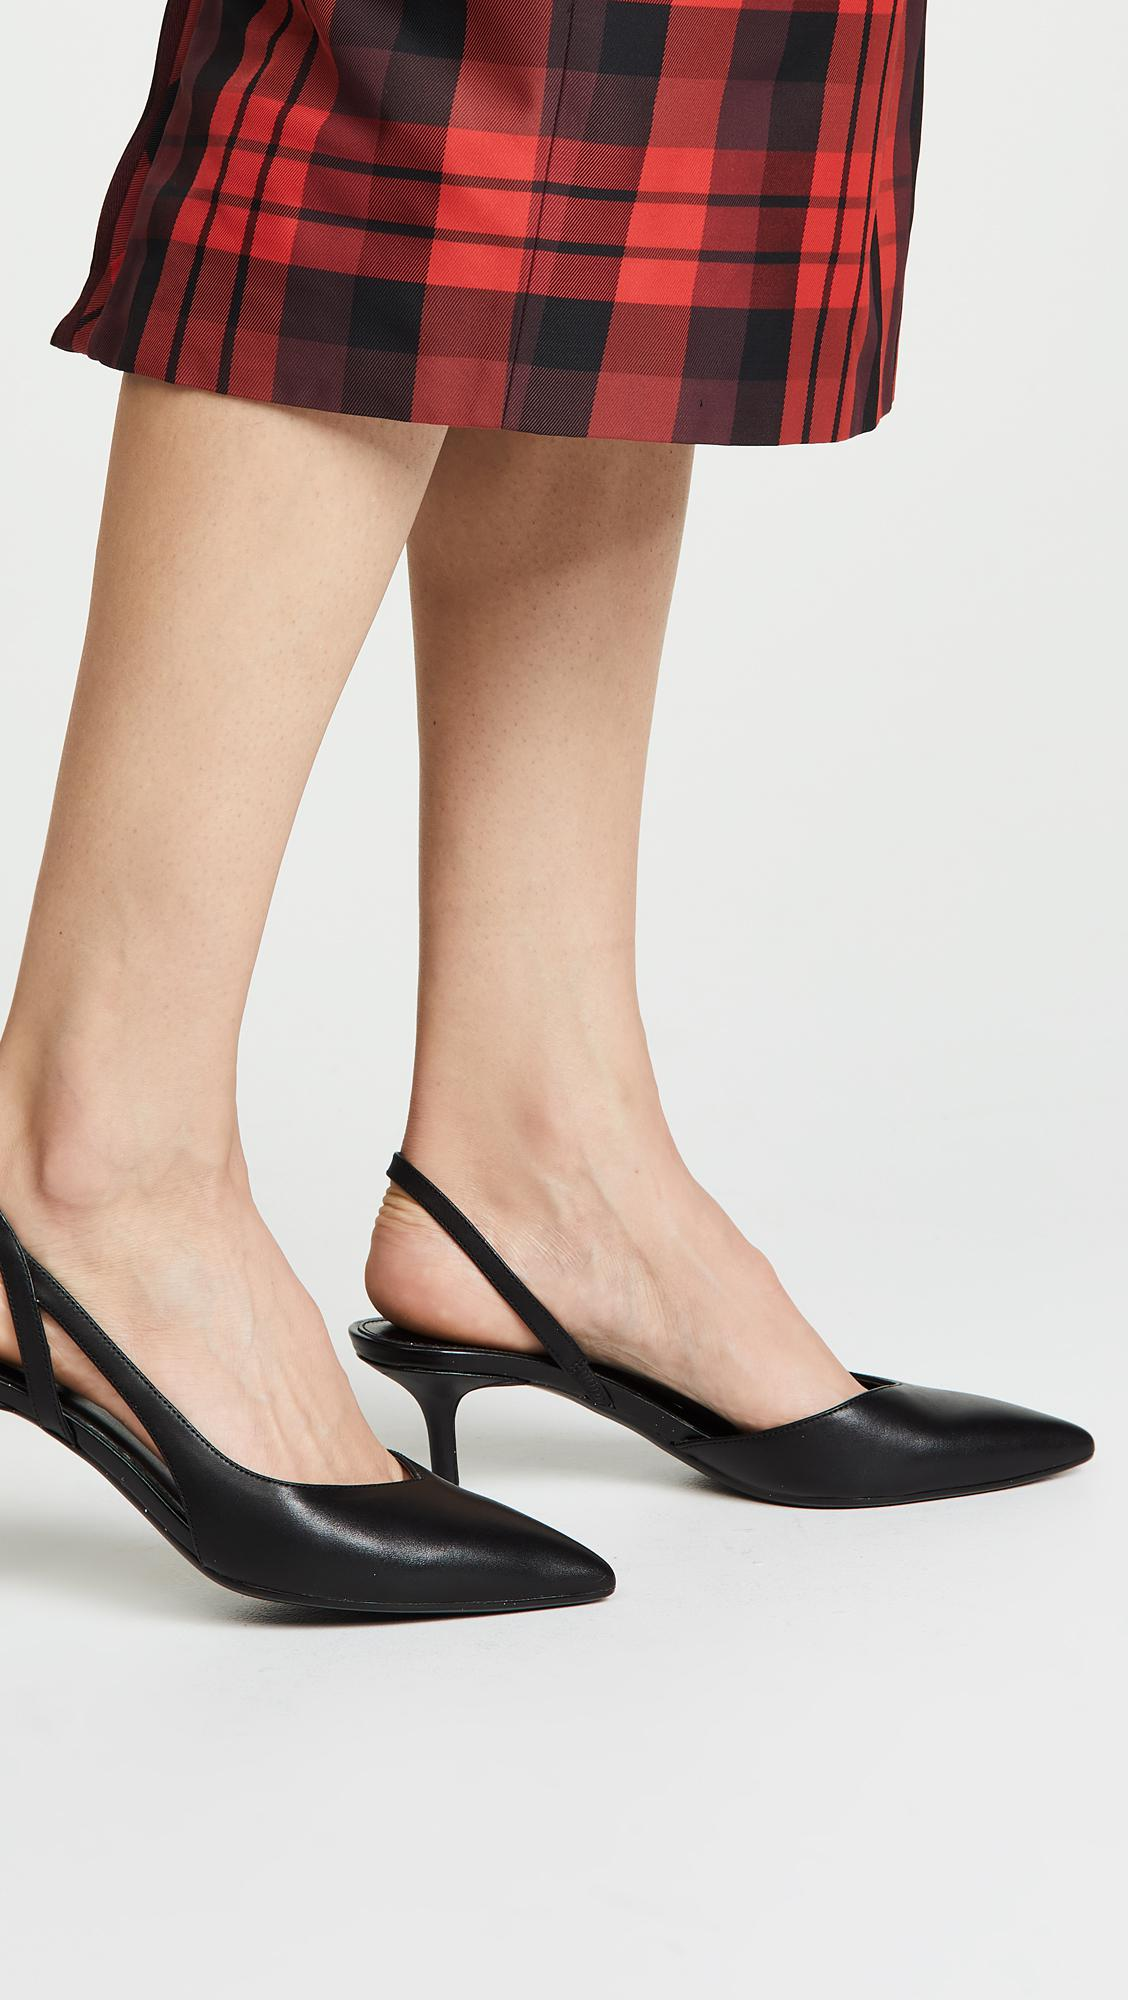 dfe545e827f Gallery. Previously sold at  Shopbop · Women s Michael Kors Eliza Women s  Patent Leather Pumps ...